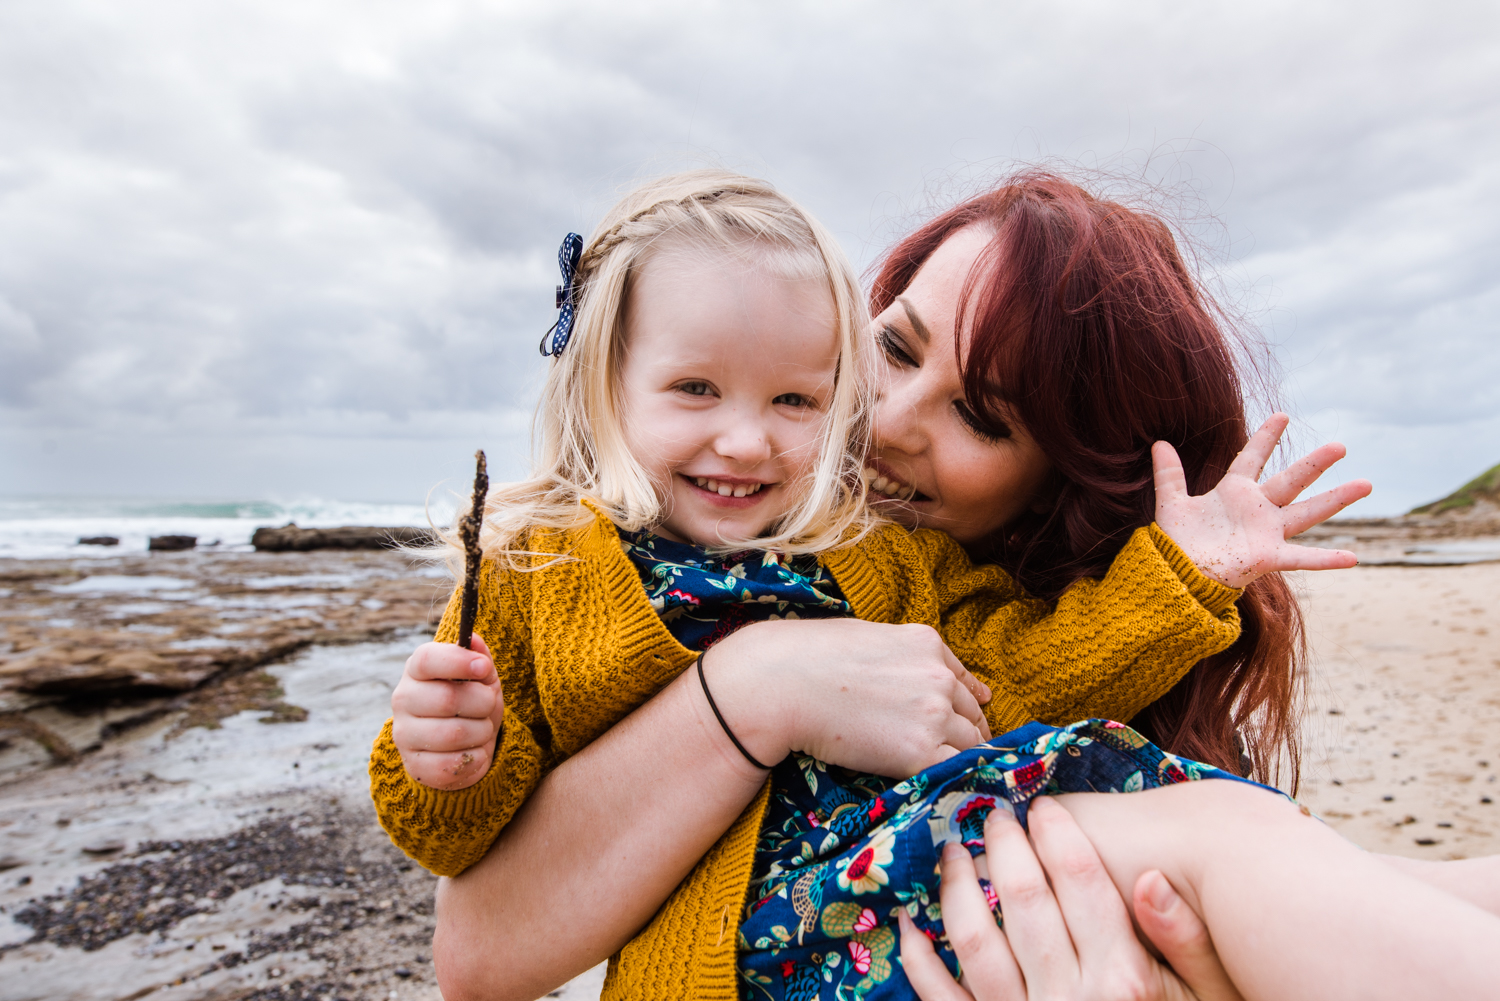 Portrait-of-a-girl-laughing-as-her-Mum-lifts-her-up